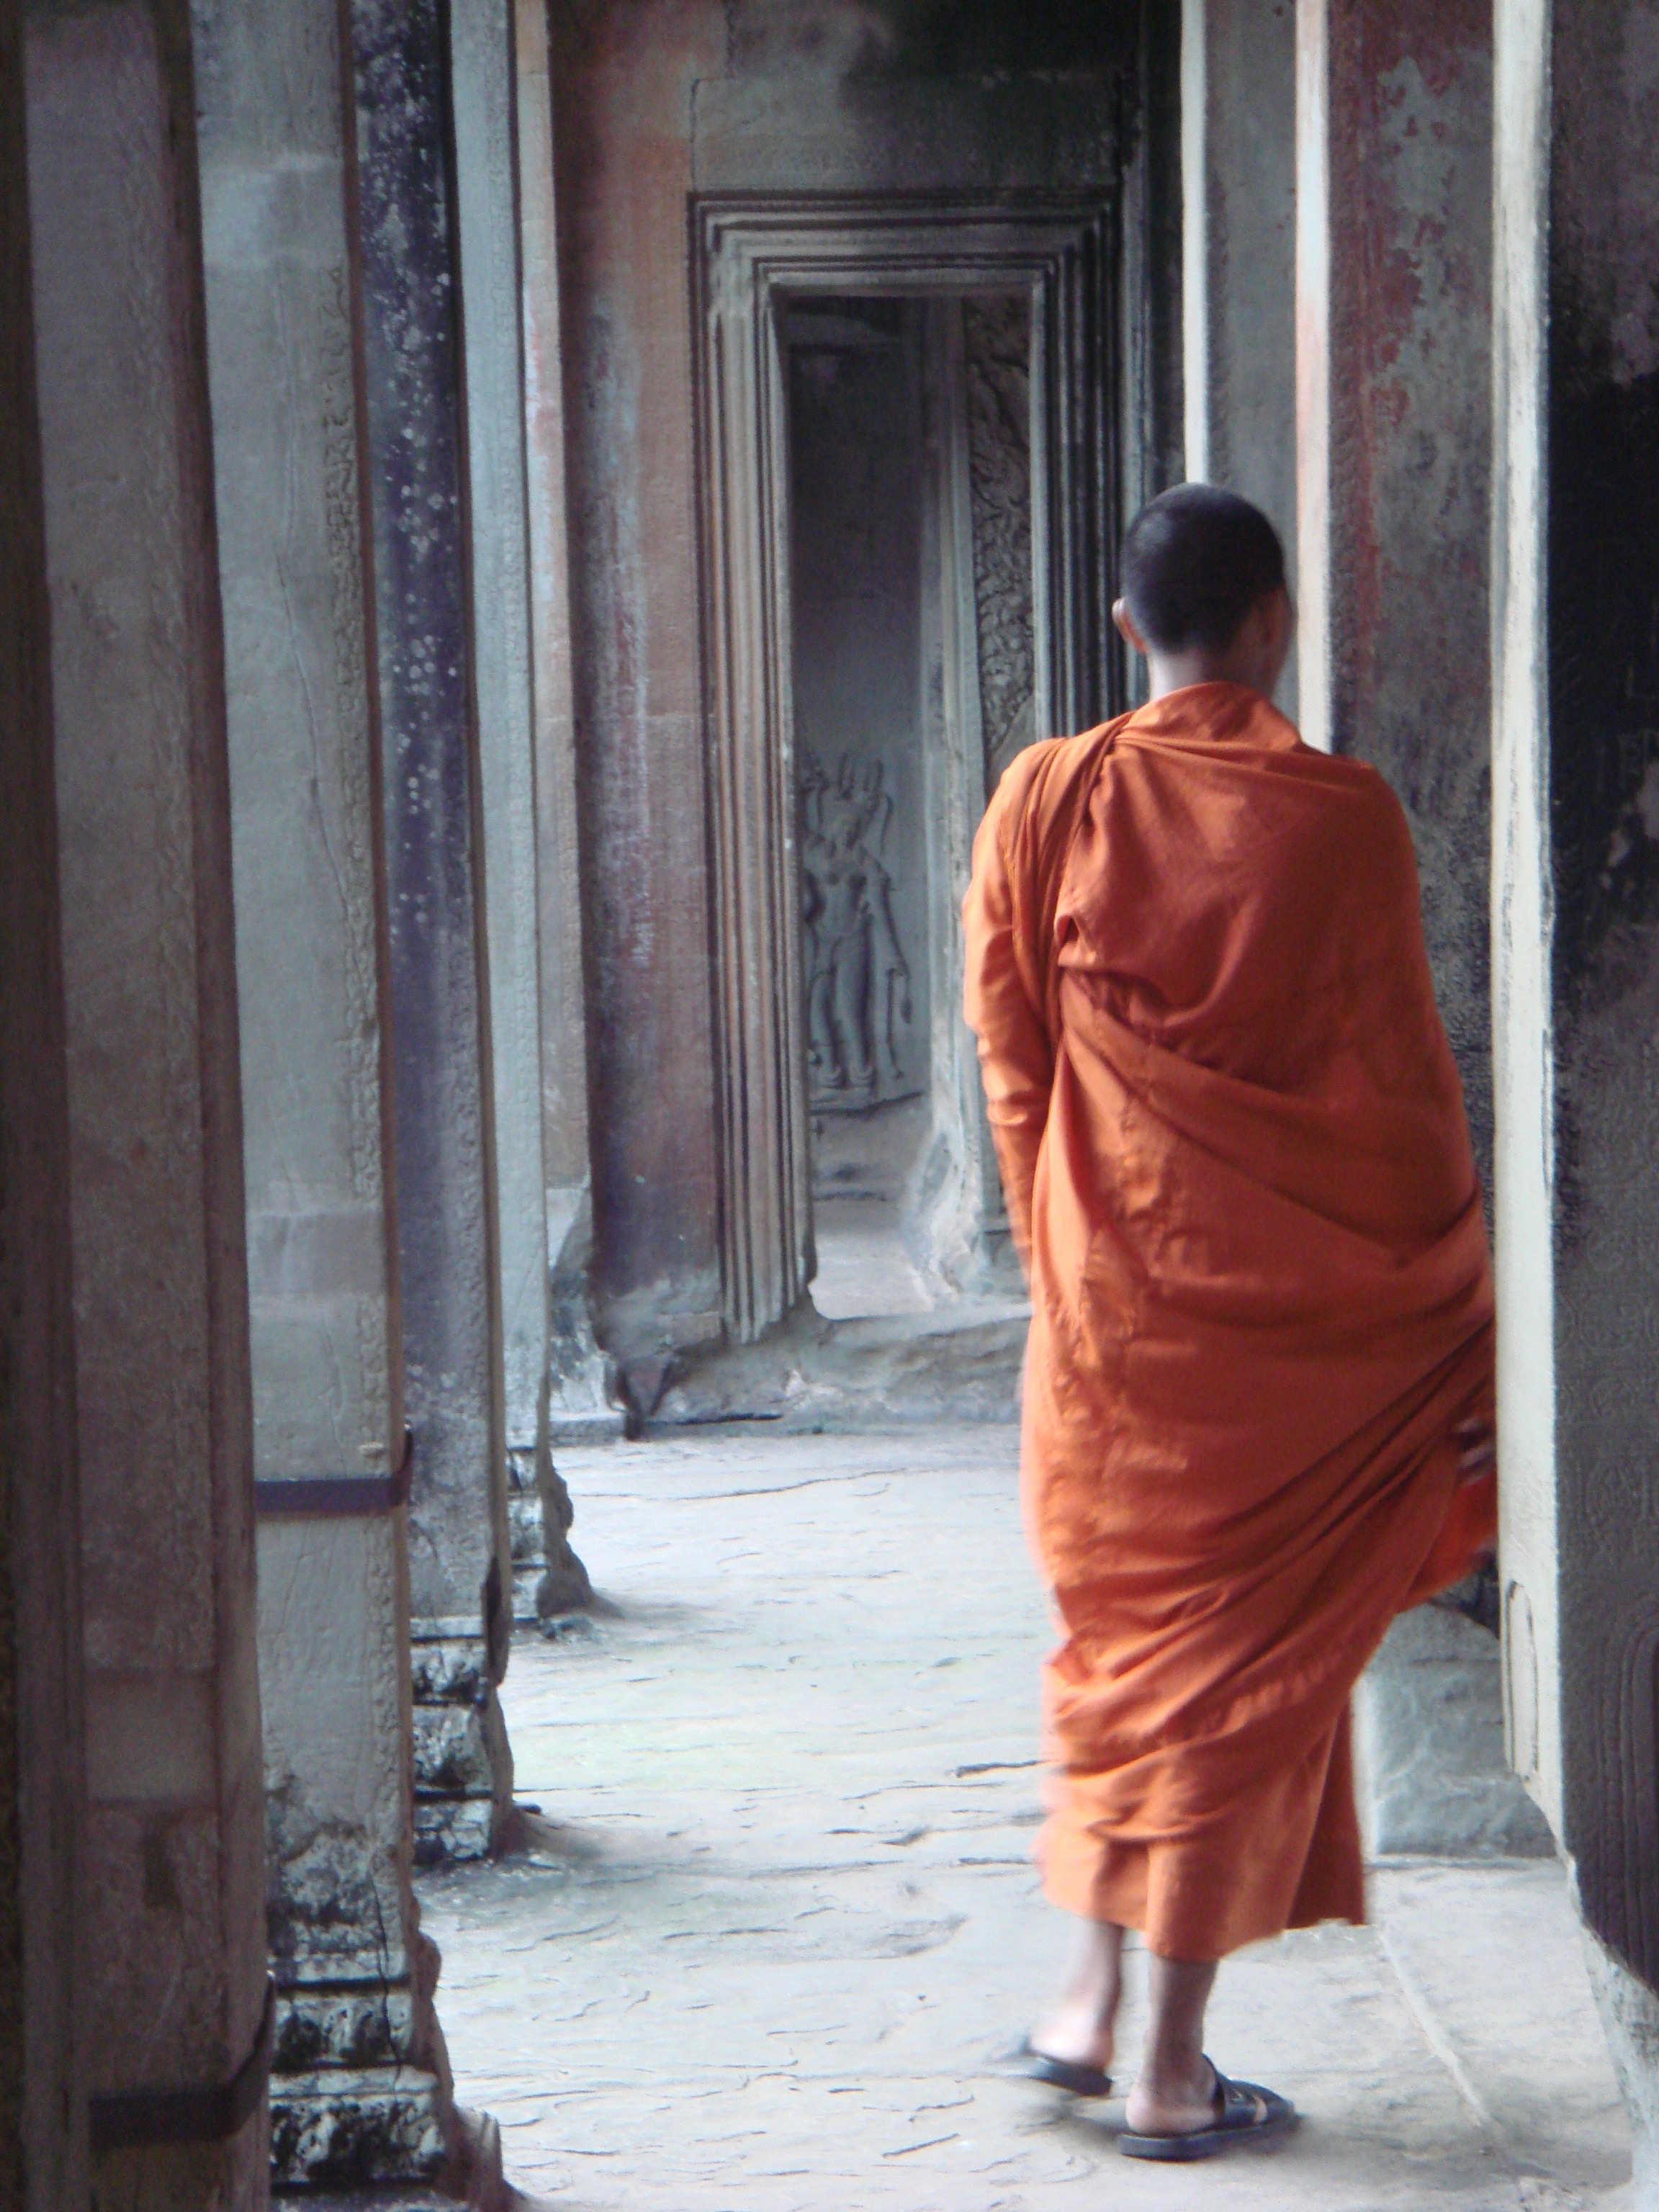 Don't touch the monks in asia